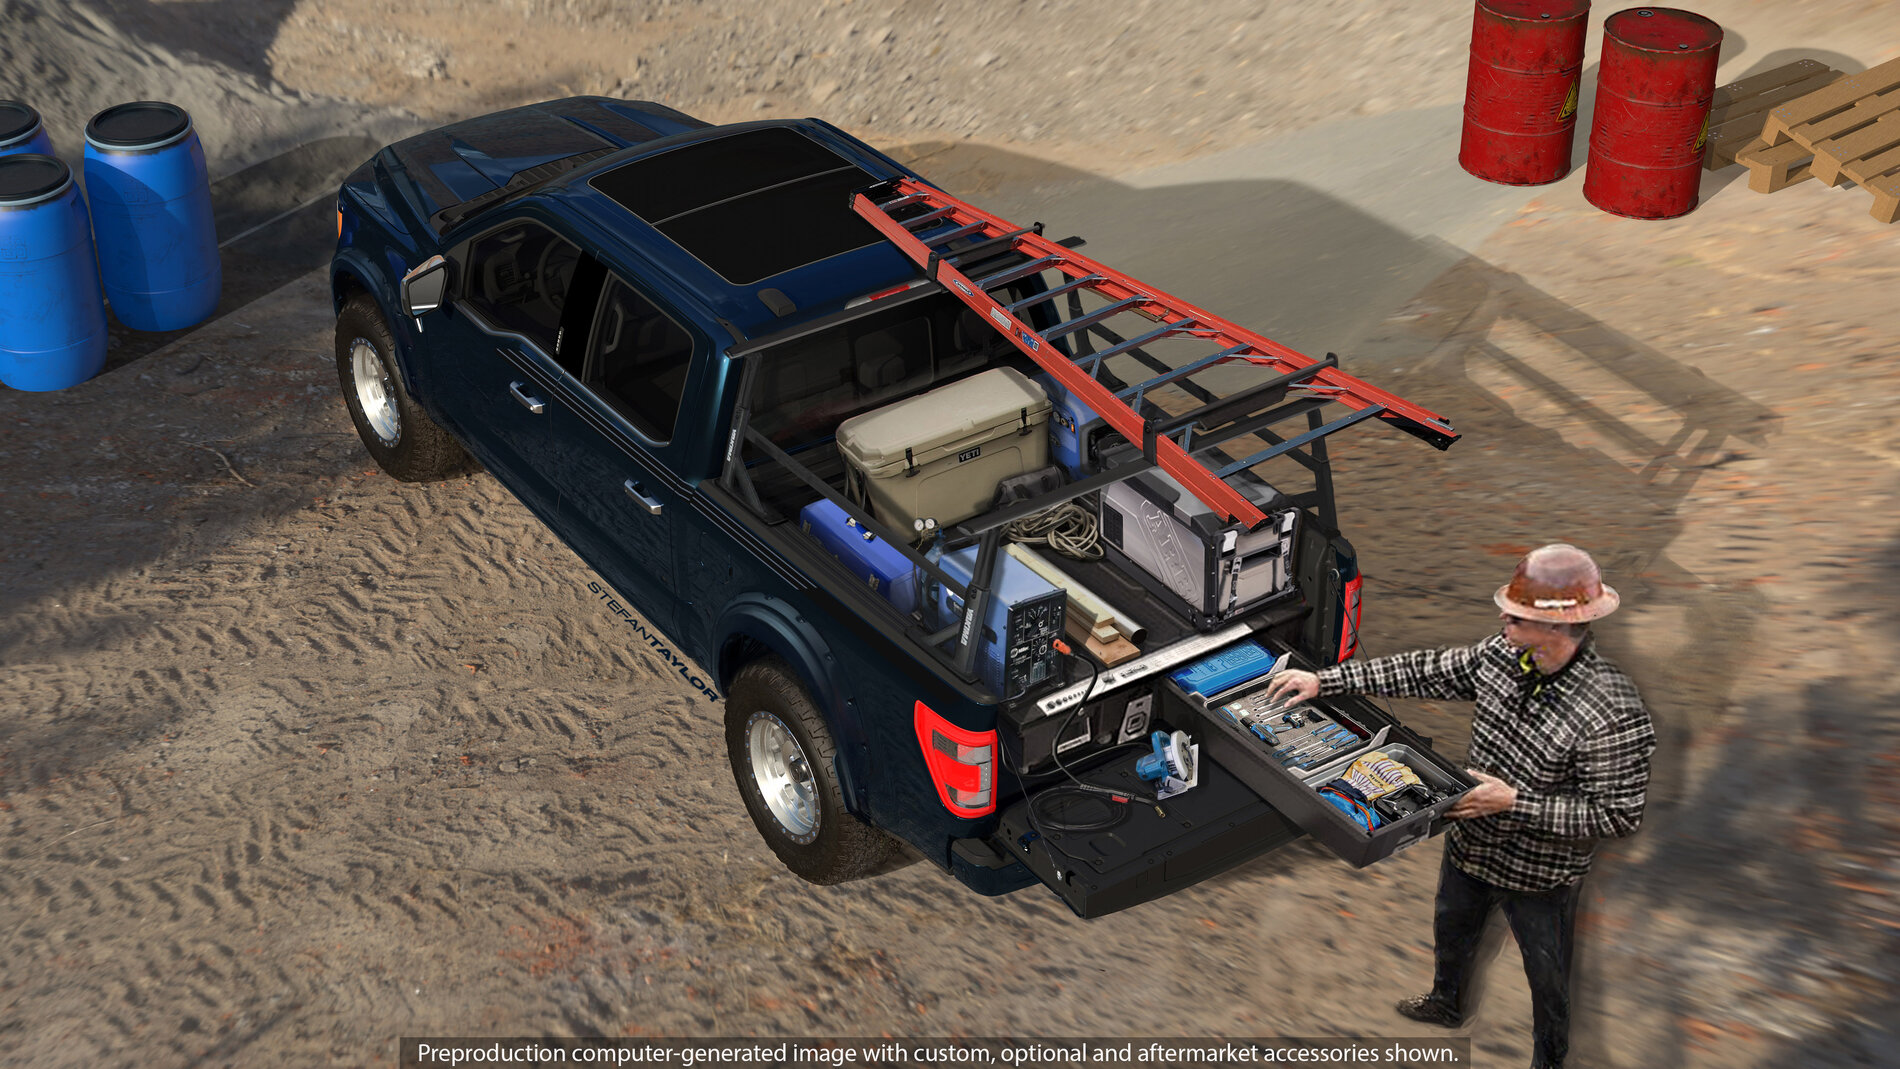 2021-Ford-F150-Limited-Hybrid-SuperCrew-4x4-by-BDS-Suspension_02.jpg